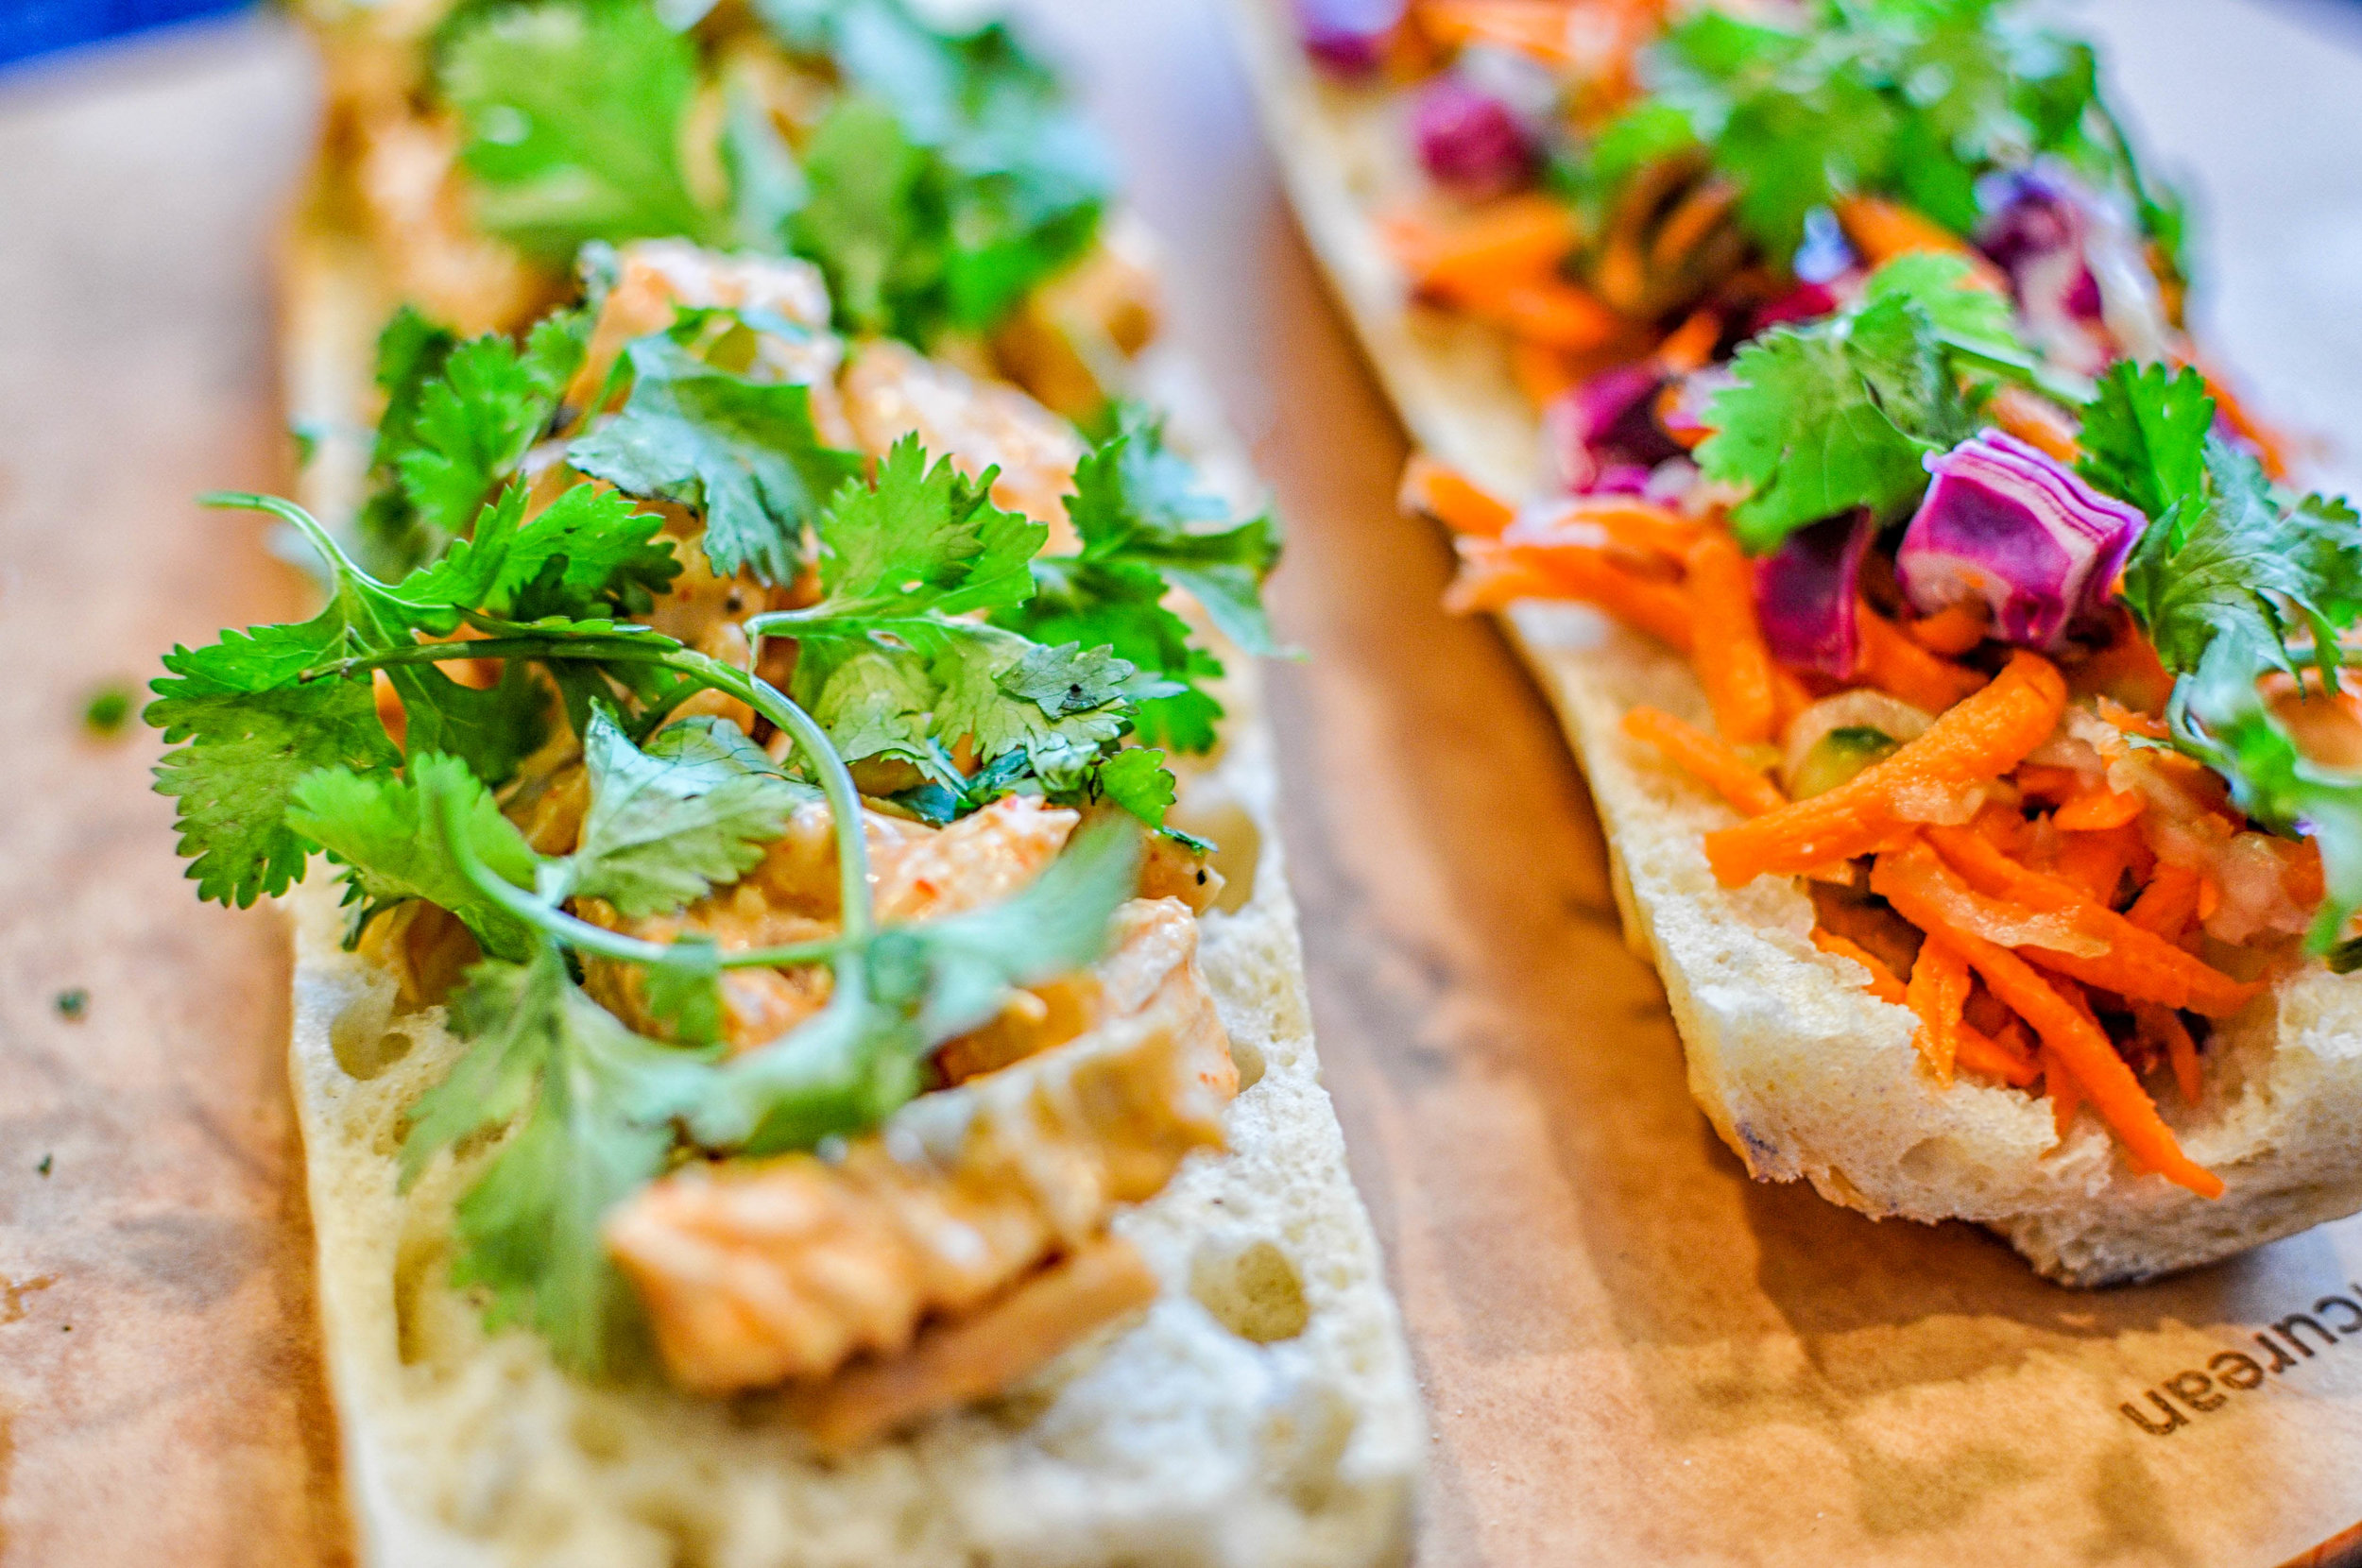 Leftover Turkey Banh Mi - with pickled veggies and a tangy mayo sauce | This Healthy Table